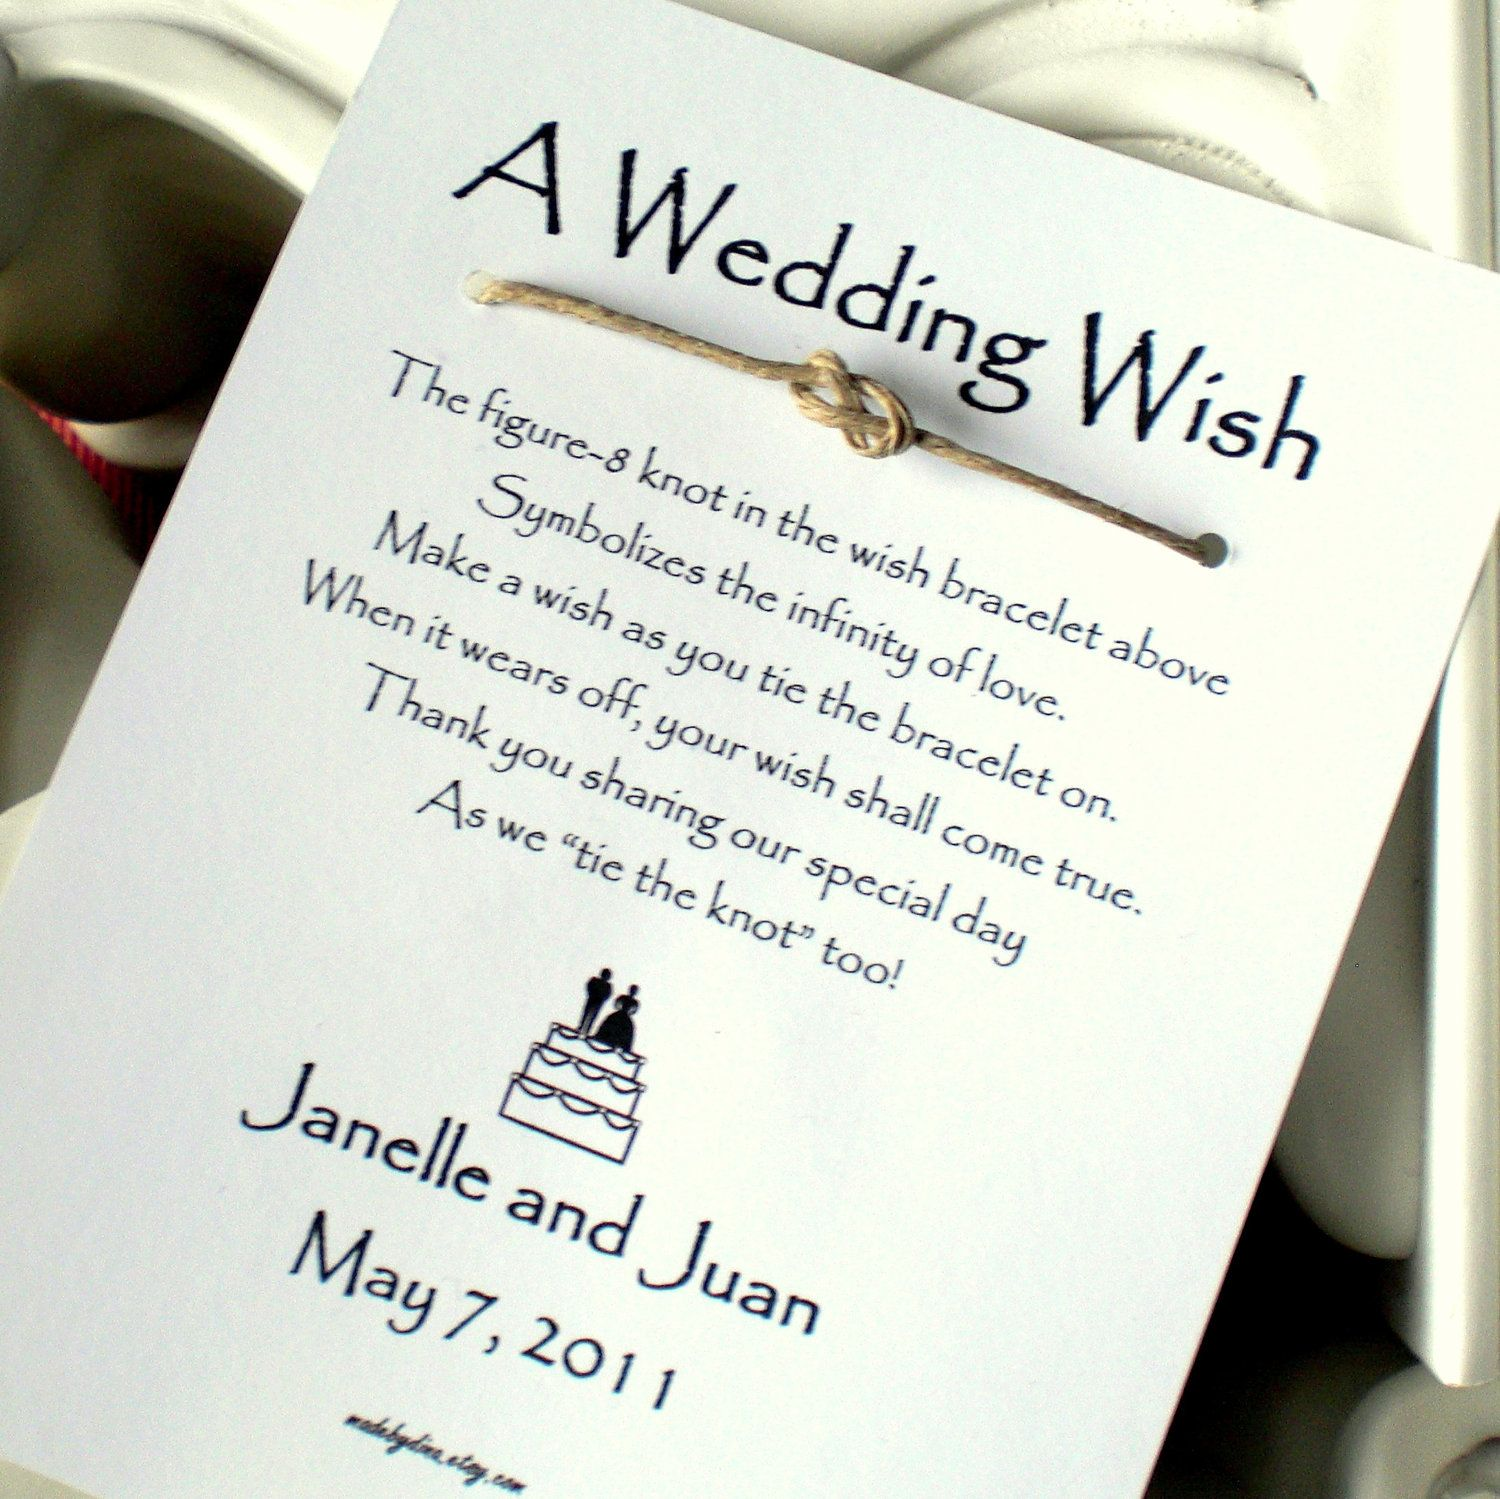 Wedding Gift Message For Bride From Groom References